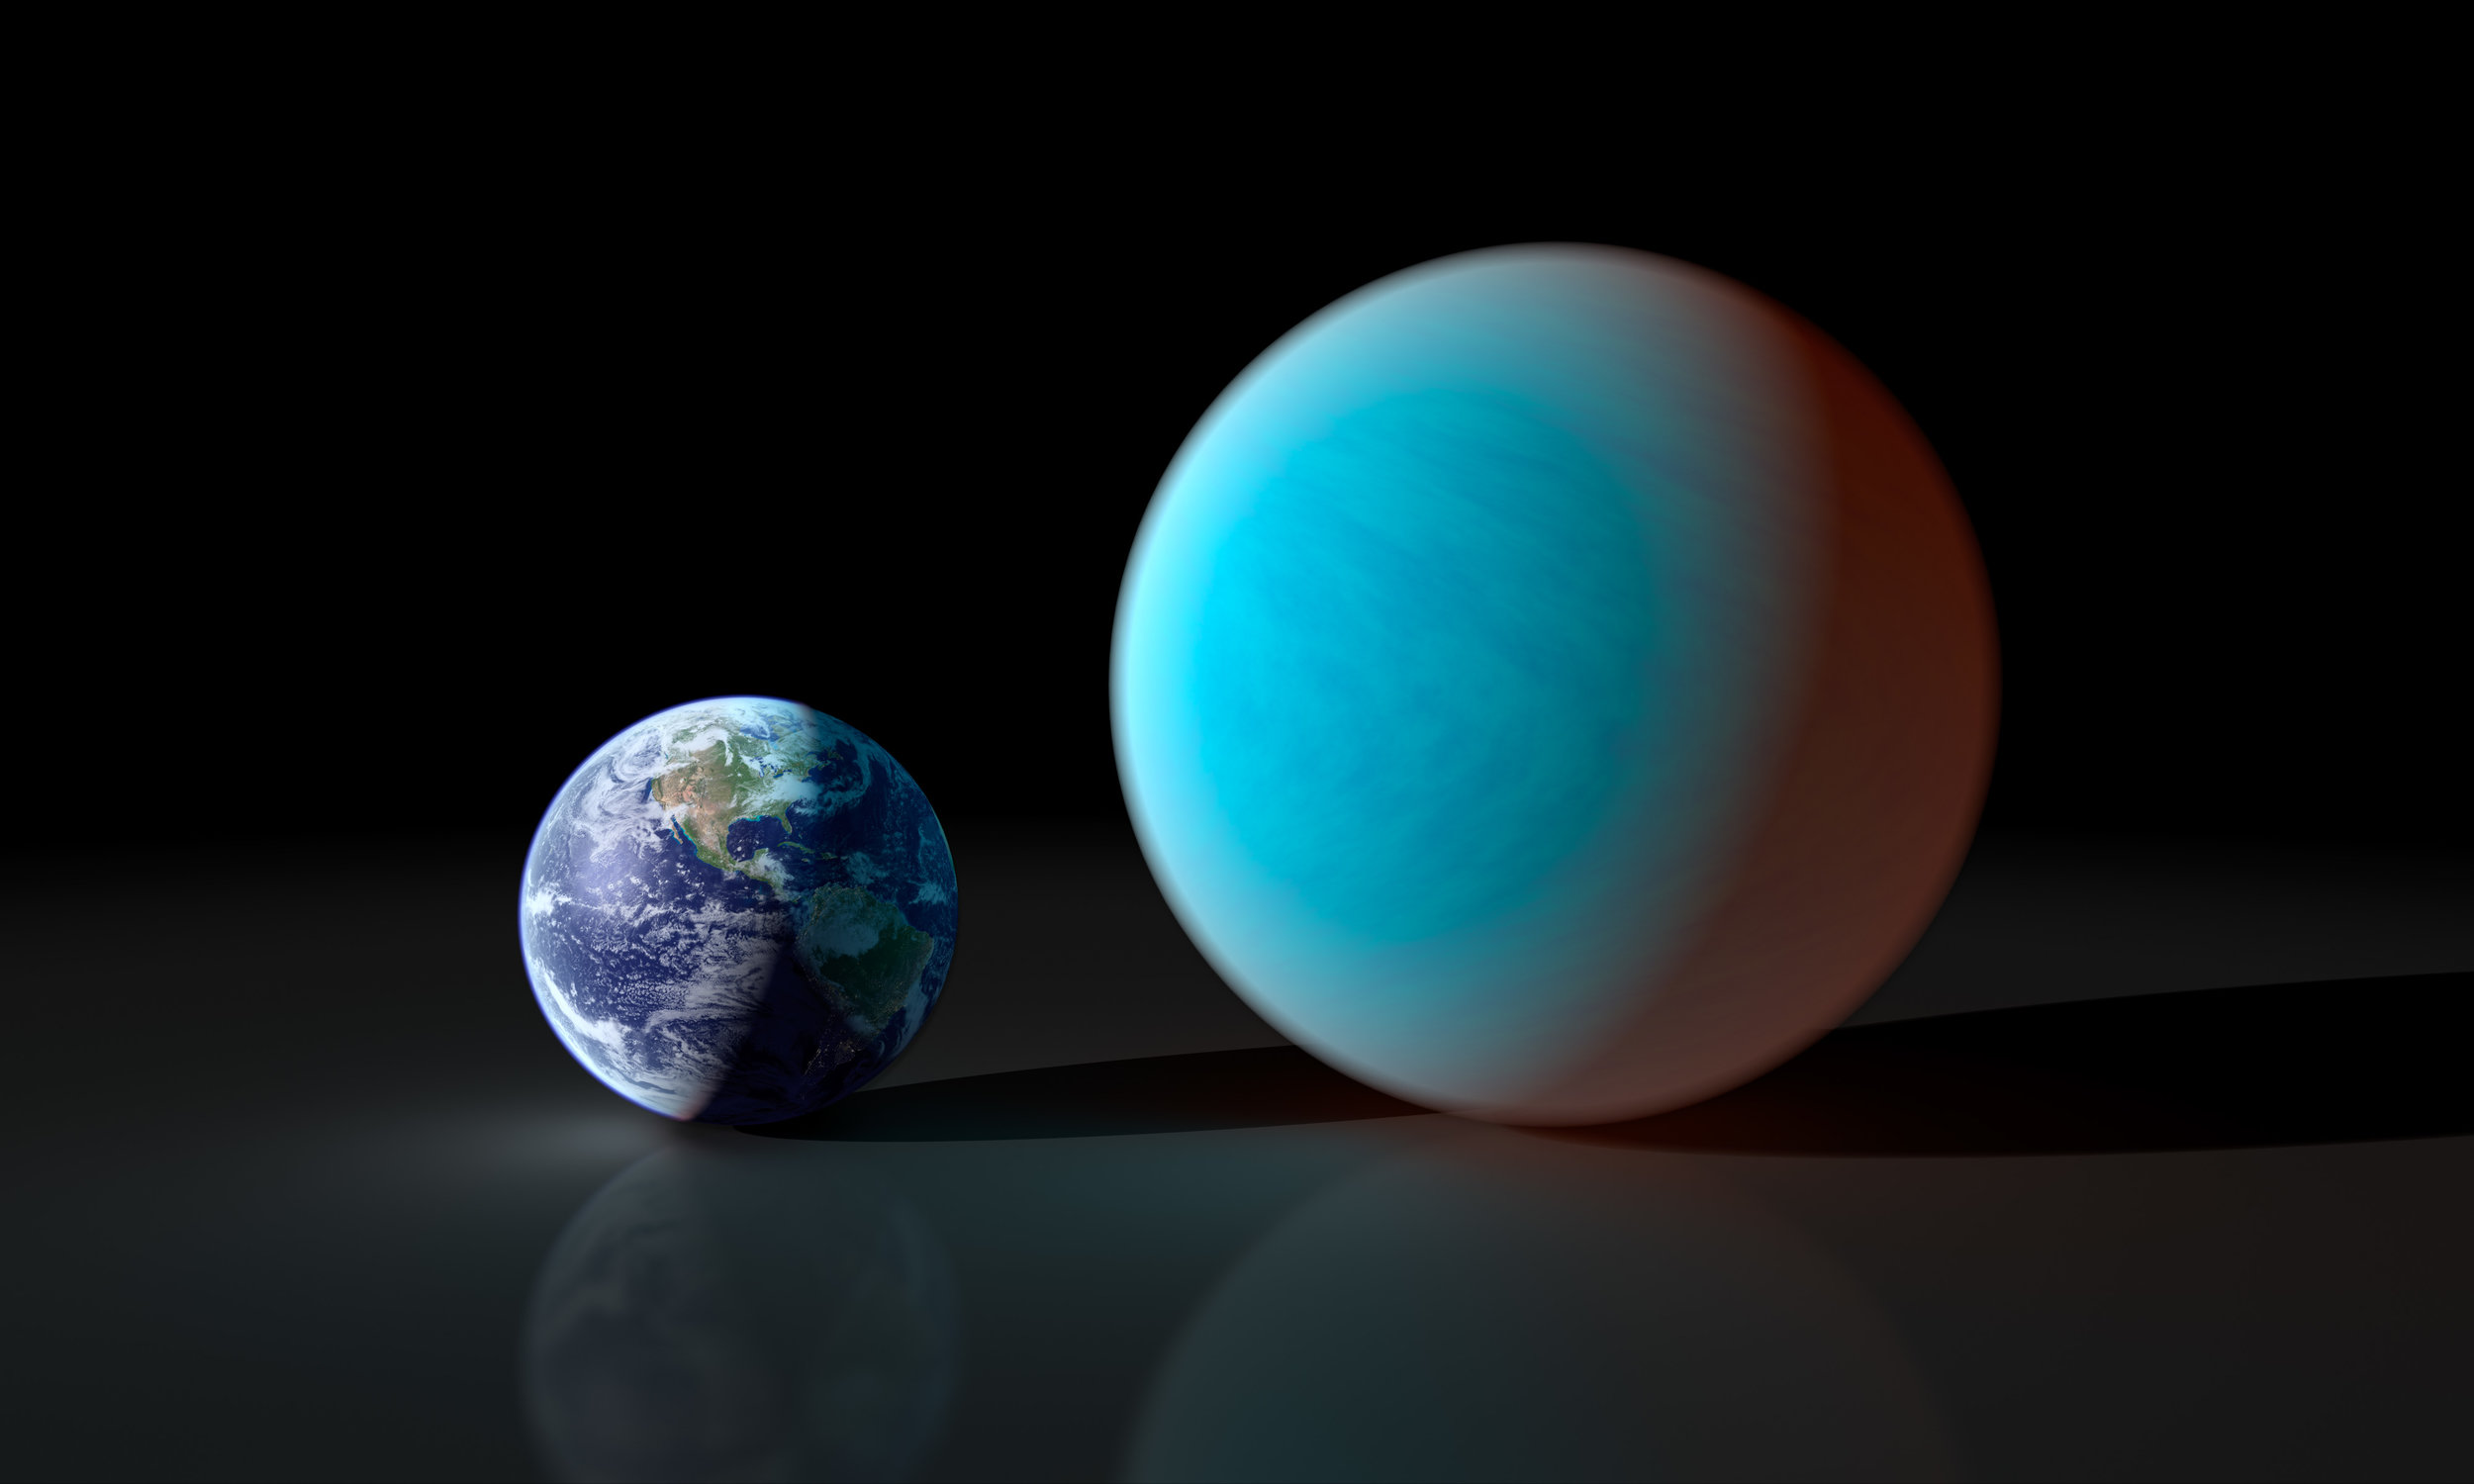 "This artists concept contrasts our familiar Earth with the exceptionally strange planet known as 55 Cancri e. While it is only about twice the size of the Earth, NASA's Spitzer Space Telescope has gathered surprising new details about this supersized and superheated world. New observations with Spitzer reveal 55 Cancri e to have a mass 7.8 times and a radius just over twice that of Earth. Those properties place 55 Cancri e in the ""super-Earth"" class of exoplanets, a few dozen of which have been found. Image credit: NASA/JPL-Caltech/R. Hurt (SSC)"